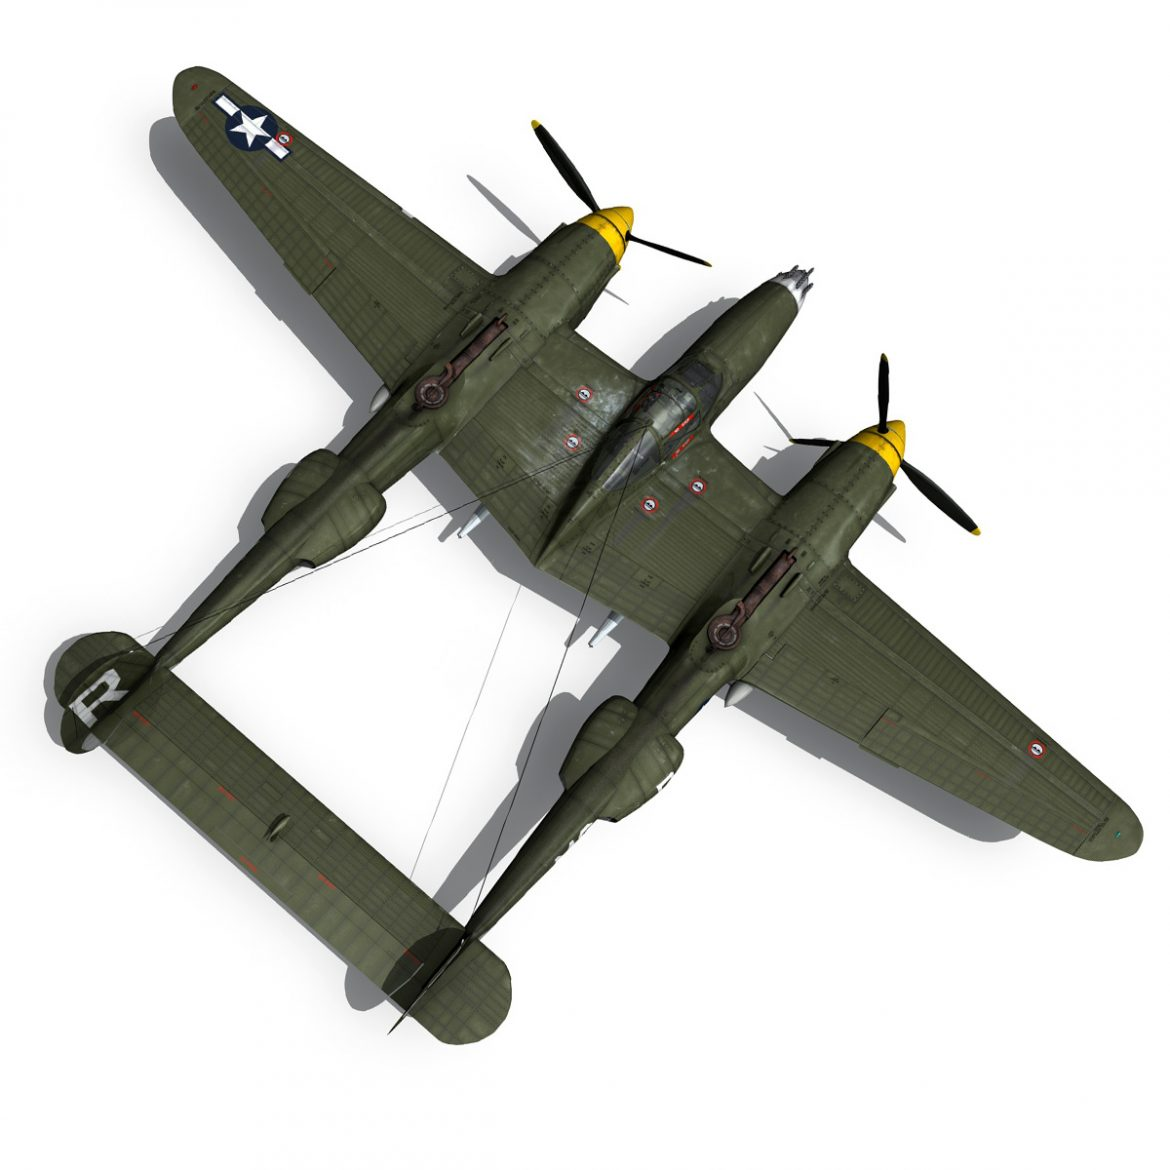 lockheed p-38 lightning – gentle annie 3d model fbx c4d lwo obj 300092